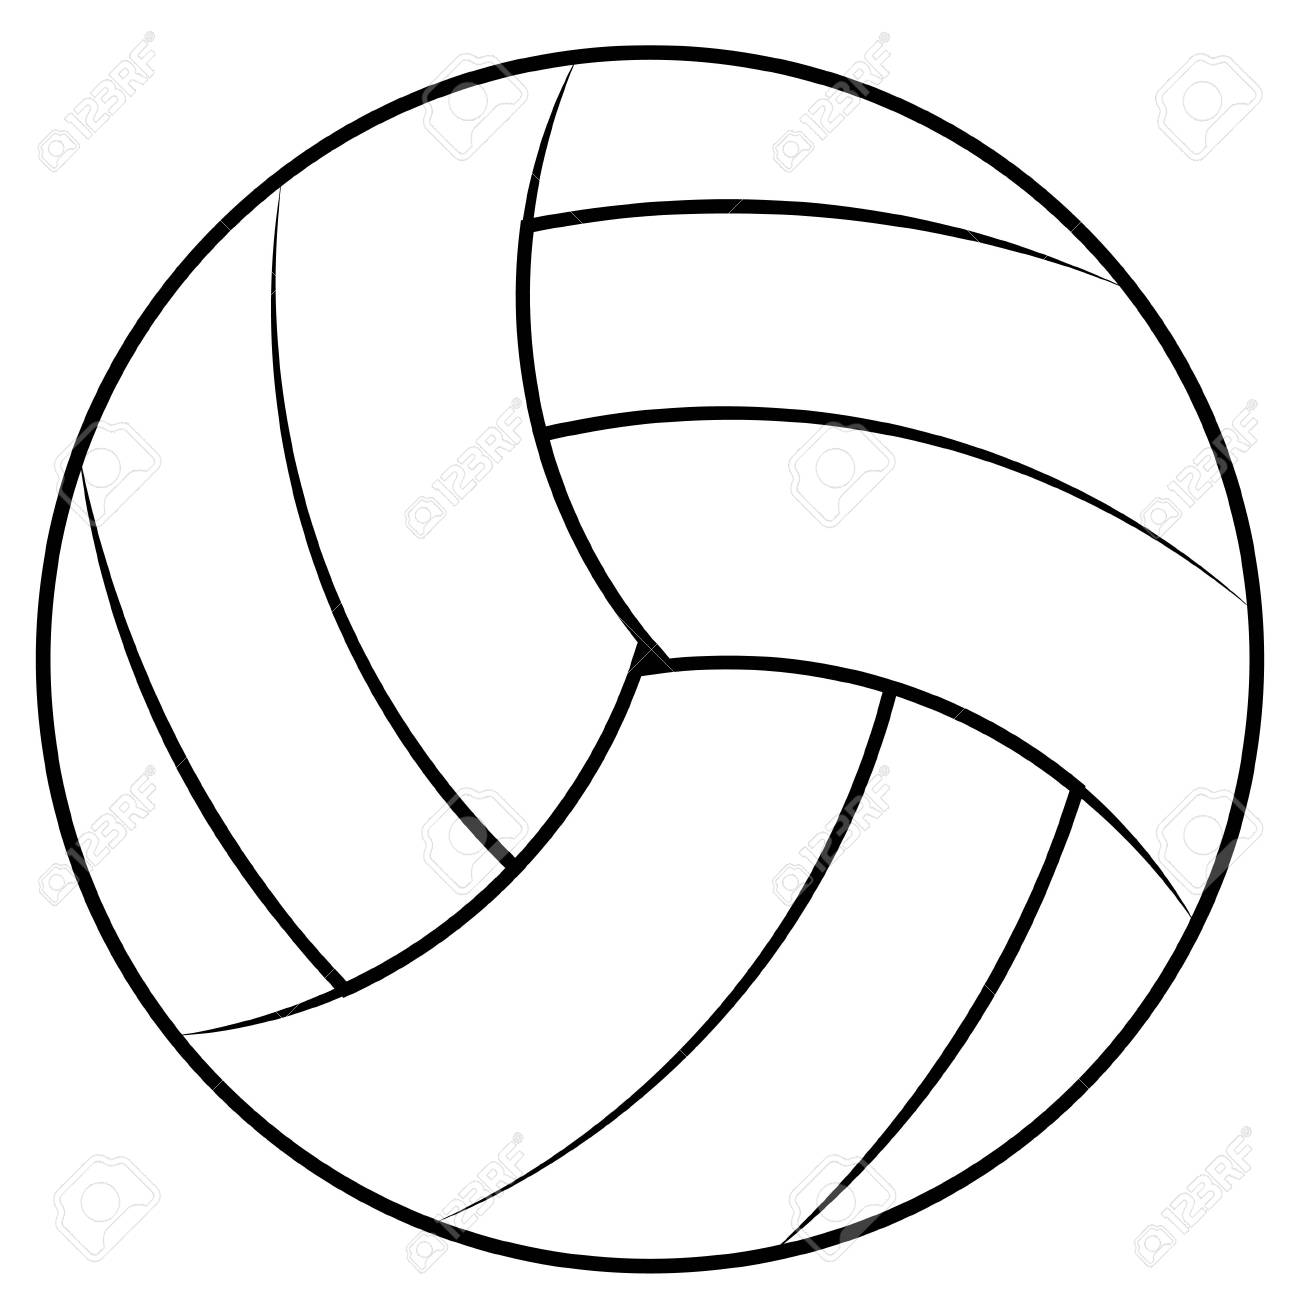 ball for playing beach volleyball vector volleyball ball contours rh 123rf com volleyball vector free volleyball vector passing